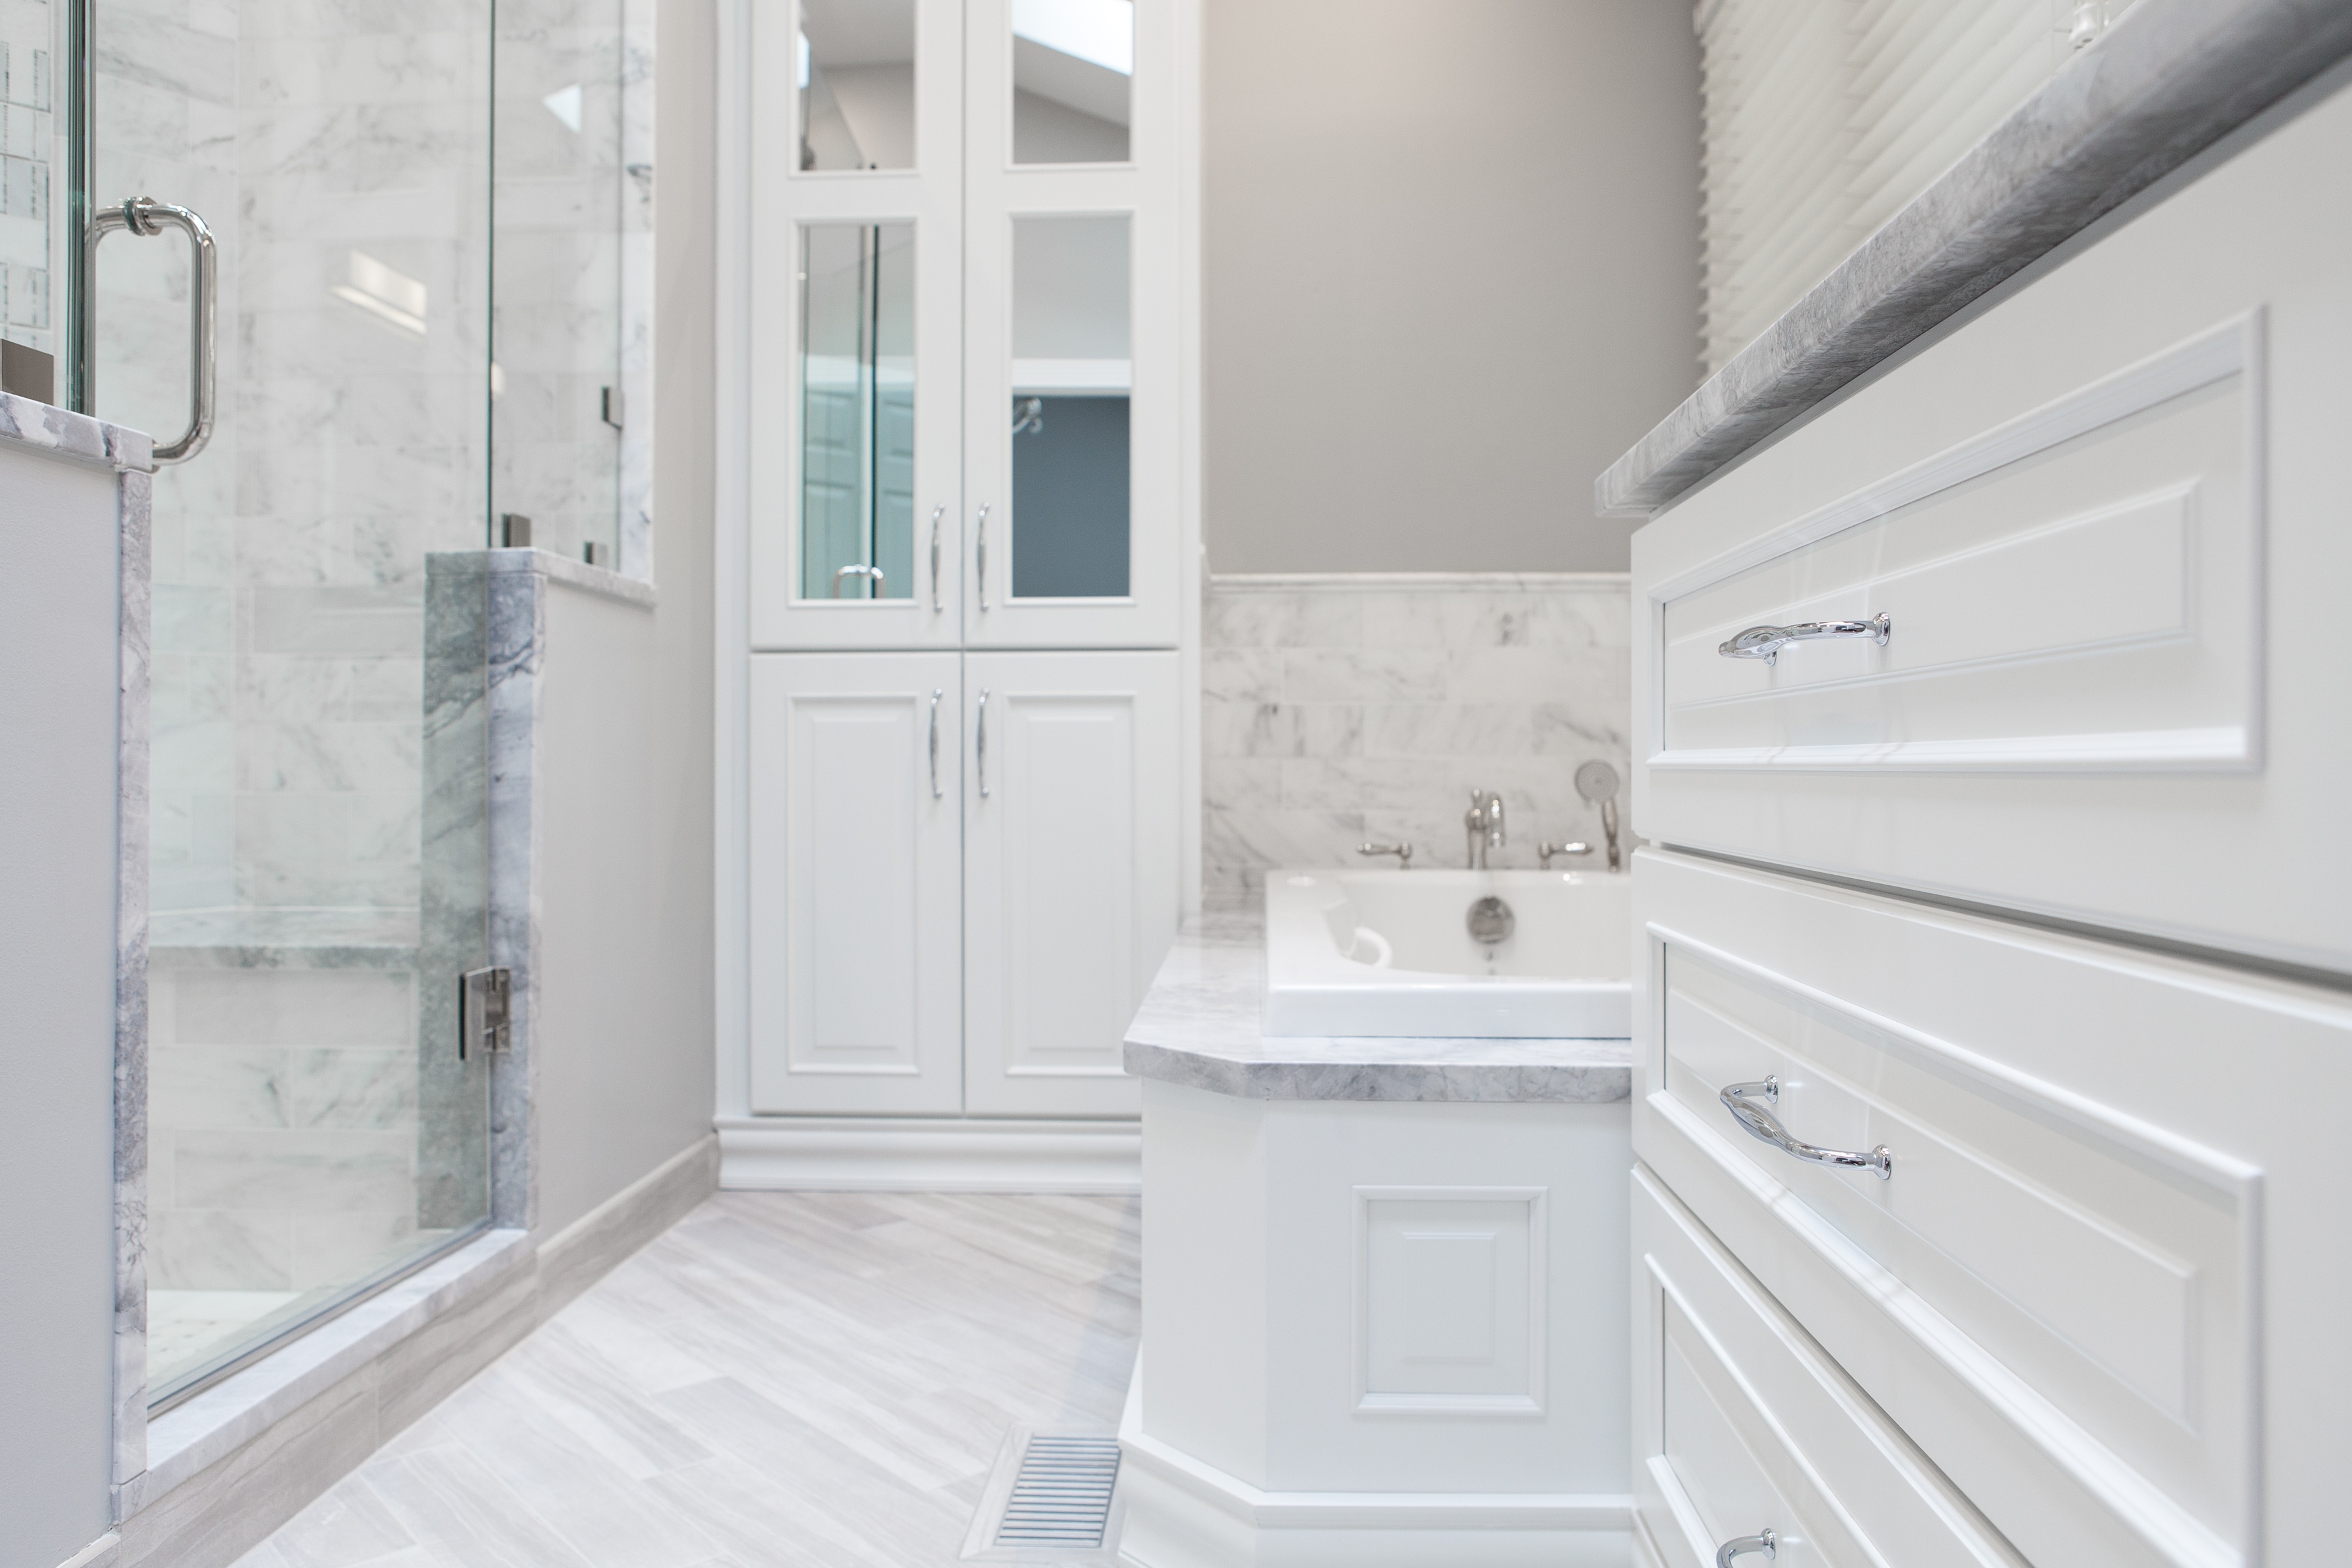 How Much Does It Cost To Remodel A Bathroom In Chicago S